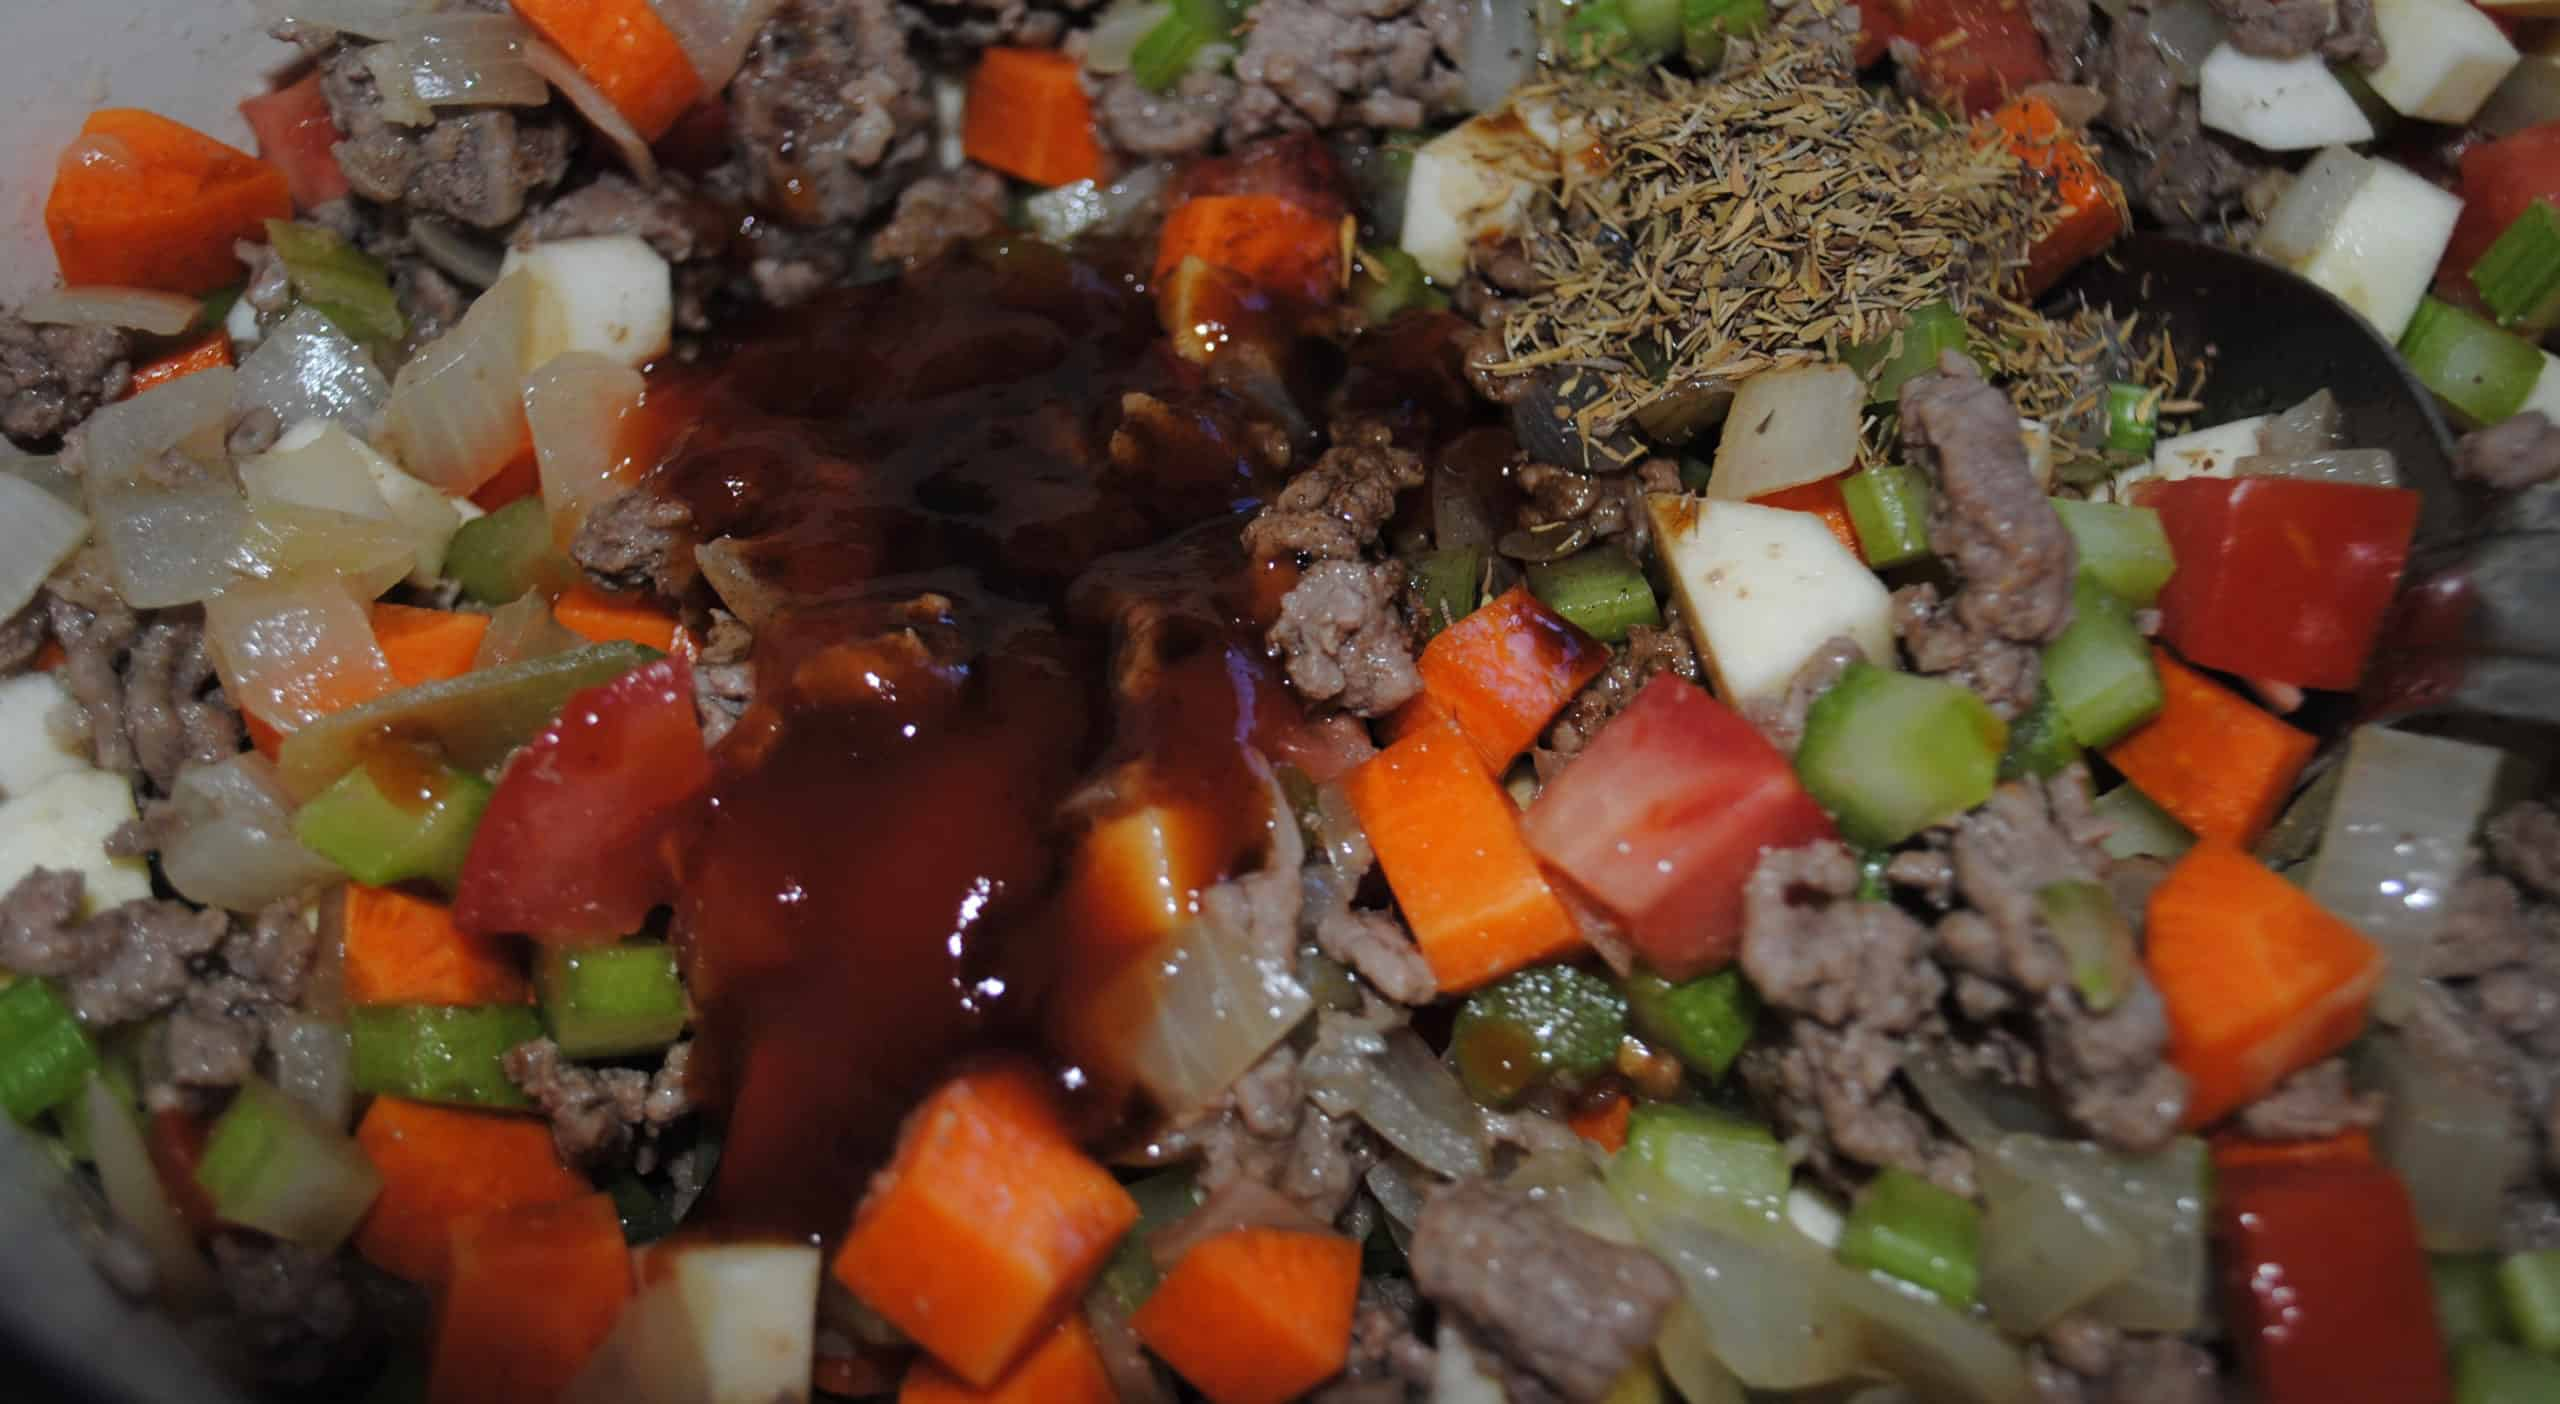 shepherds pie - sauces, salt, pepper and thyme added to pan